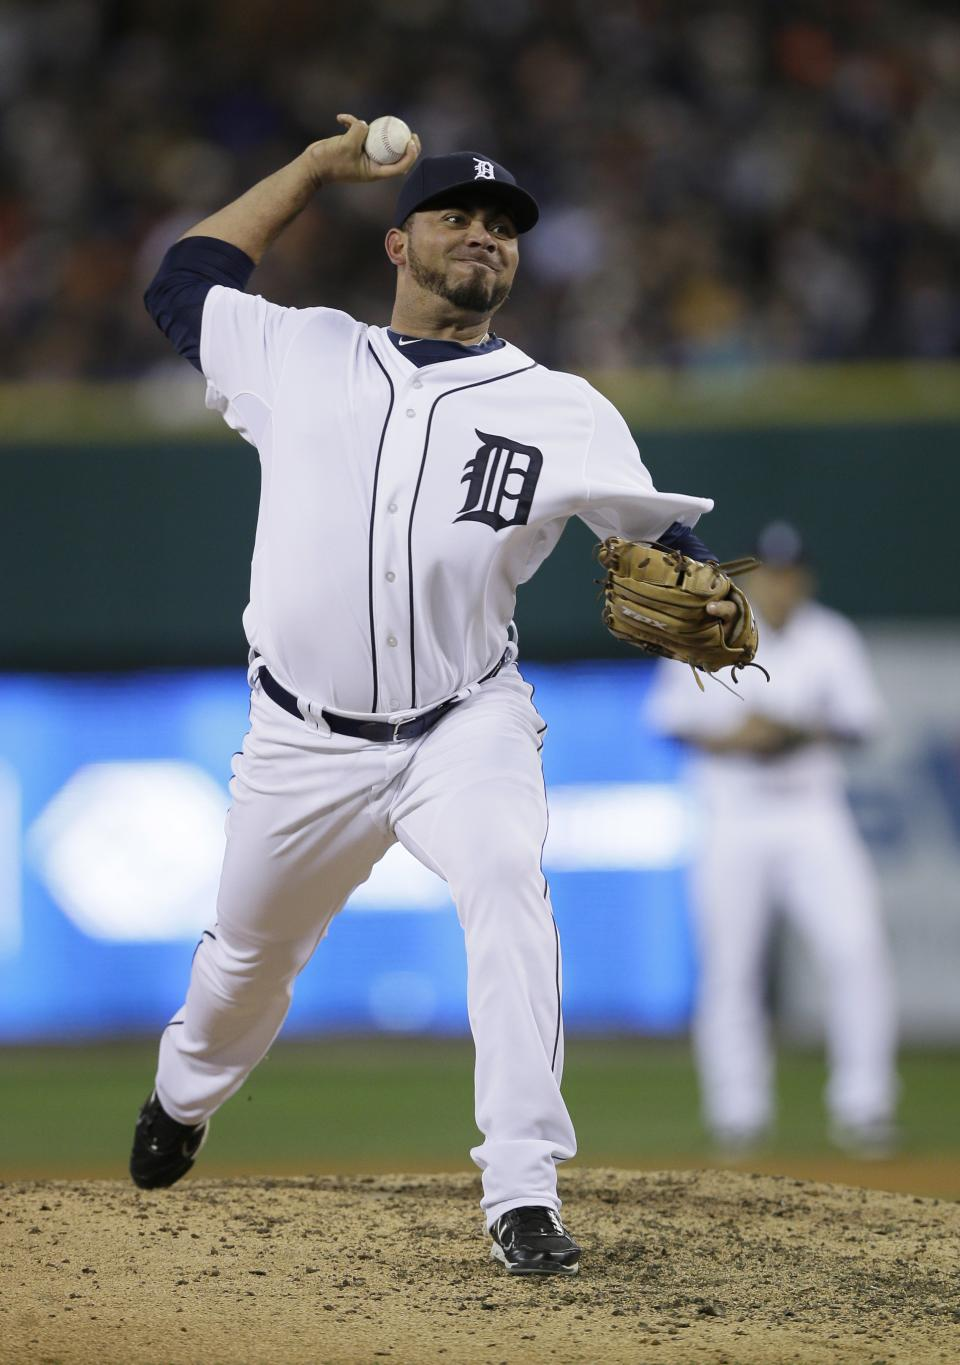 Detroit Tigers' Joaquin Benoit throws during the eighth inning of Game 3 of baseball's World Series against the San Francisco Giants Saturday, Oct. 27, 2012, in Detroit. (AP Photo/Matt Slocum)